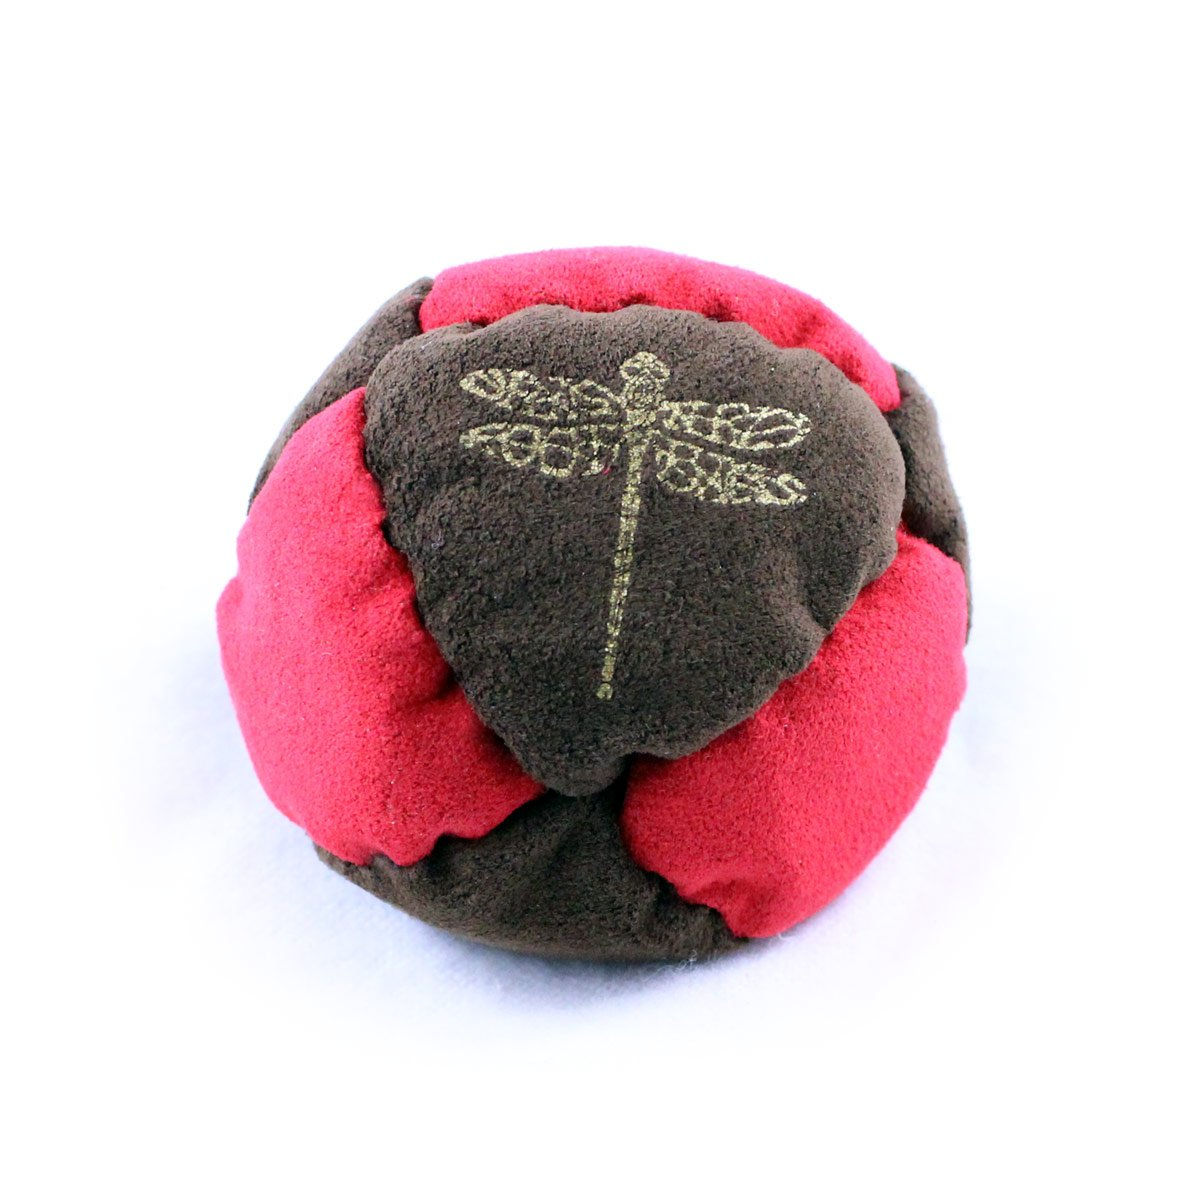 Dragonfly Footbags Brown and Red Pogo 8 Panel Metal Filled Proseries (Hacky Sack) by Dragonfly Footbags